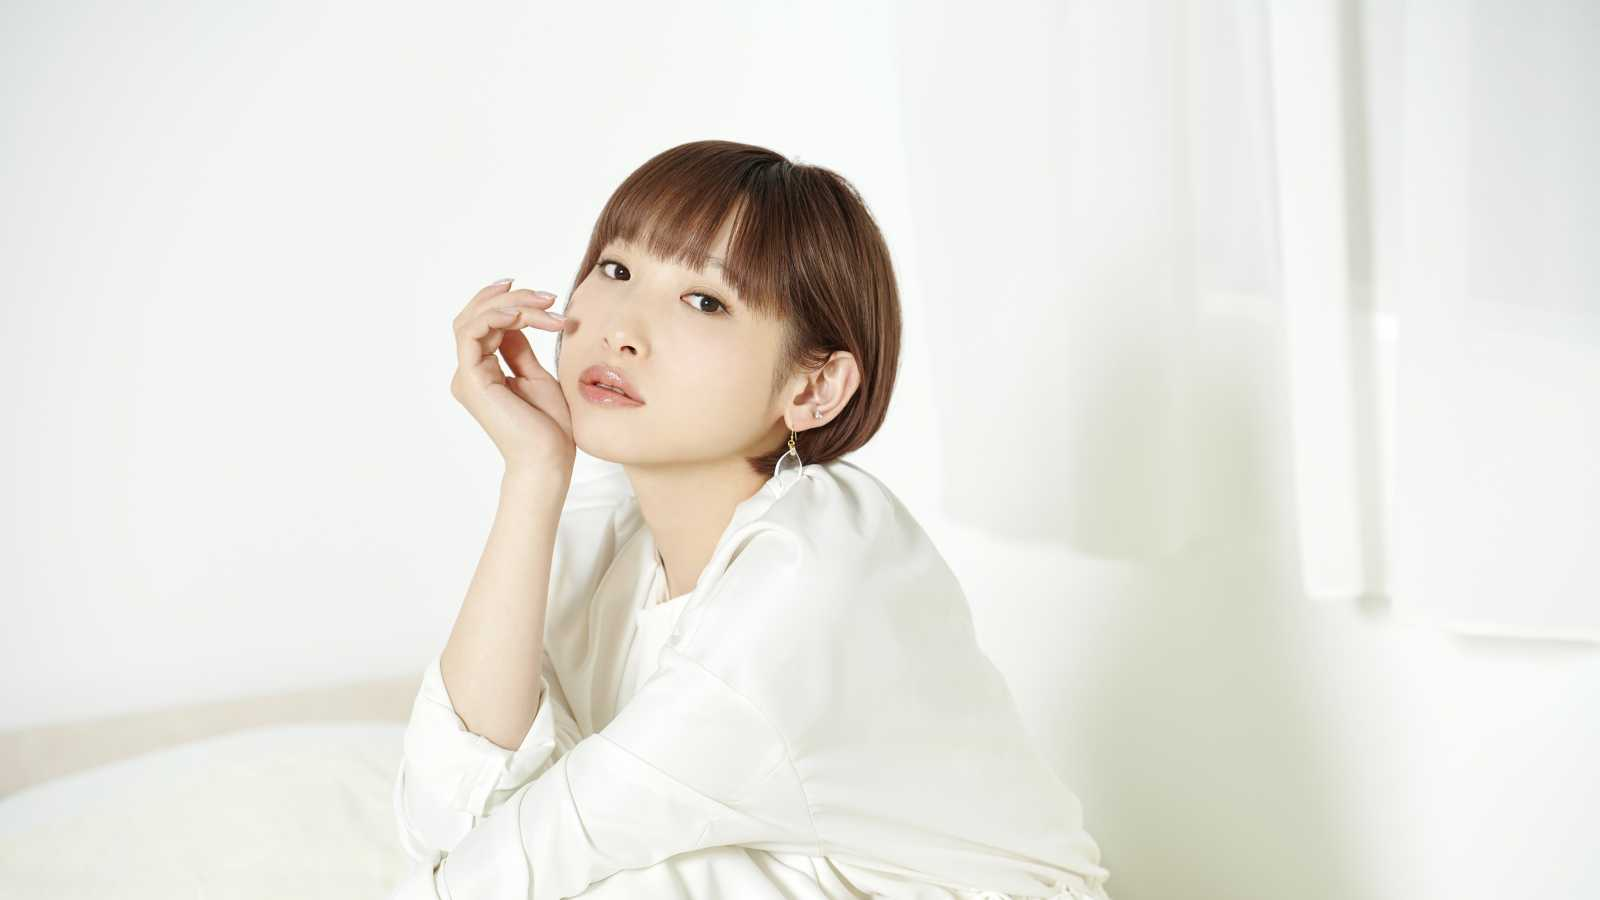 Novo single de Yoshino Nanjo © NBCUniversal Entertainment Japan. All rights reserved.